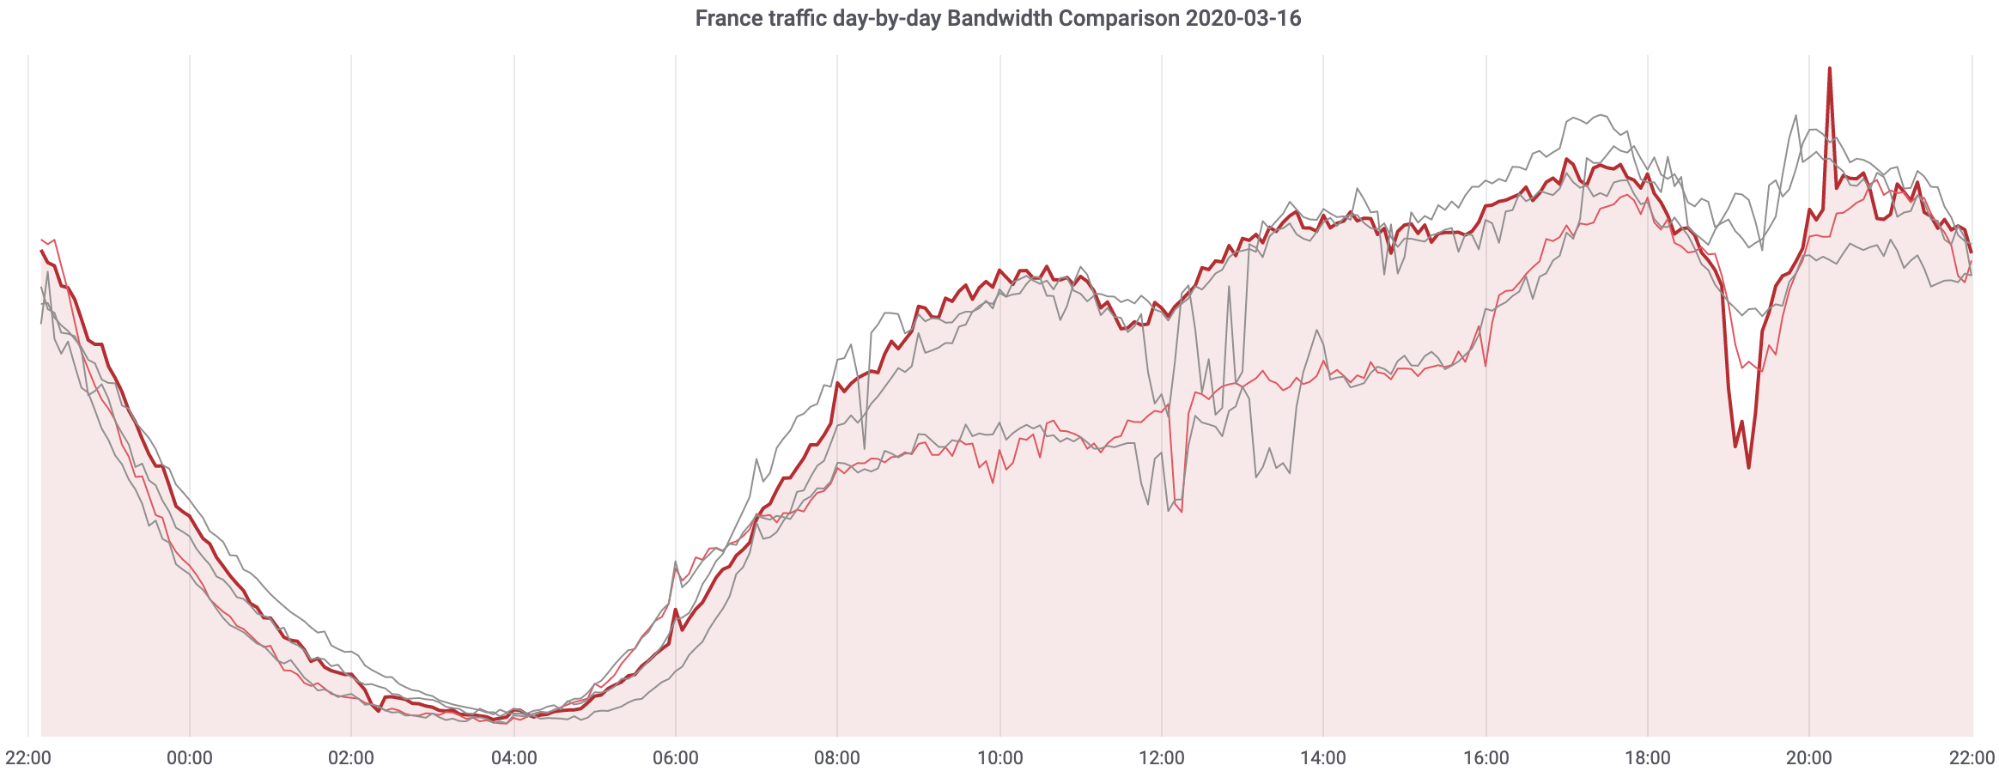 On the shoulders of giants: recent changes in Internet traffic